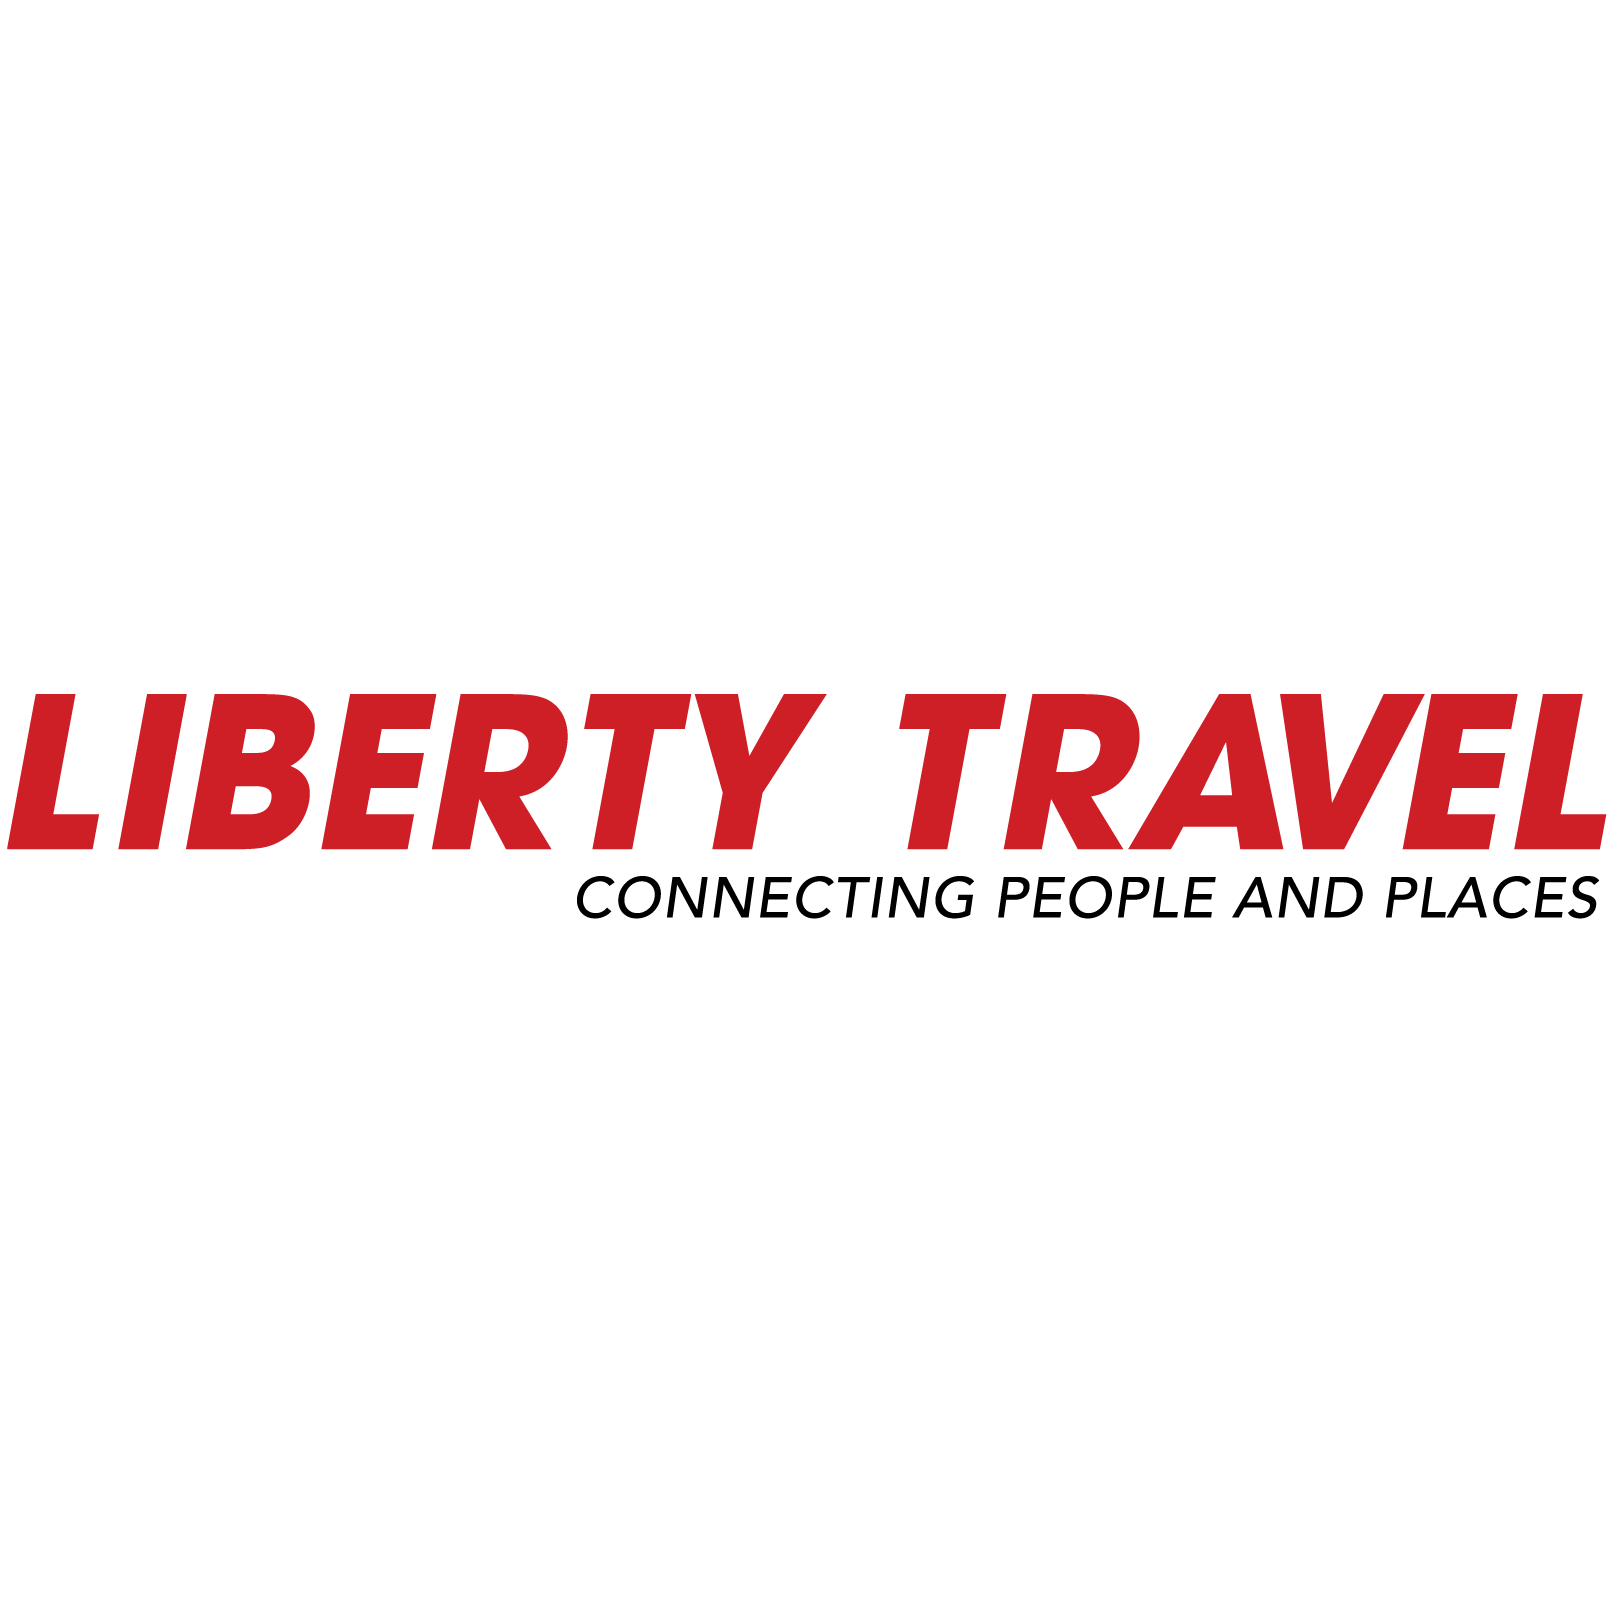 Liberty Travel - Warwick, RI - Travel Agencies & Ticketers